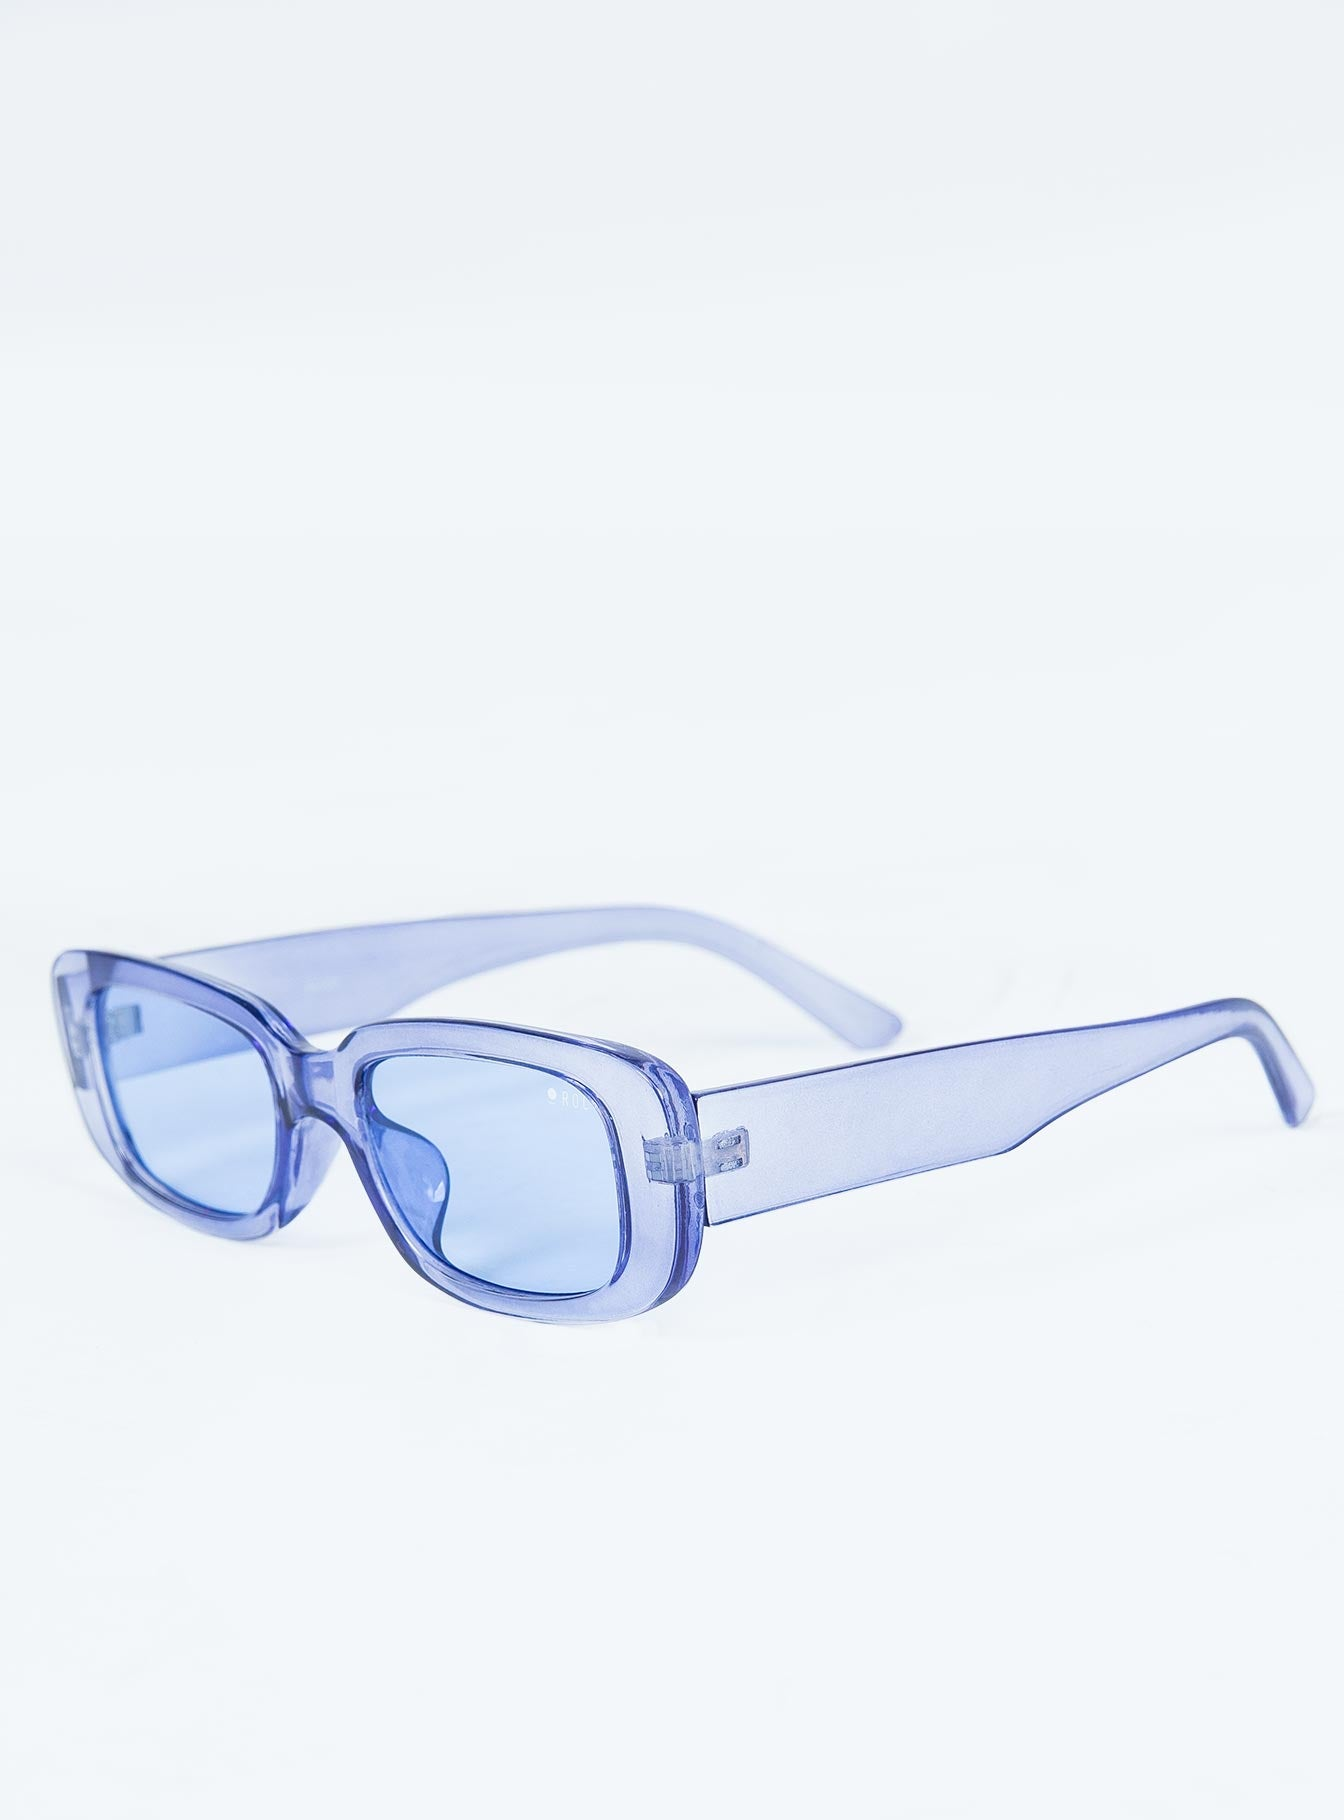 Creeper Sunglasses Clear Blue